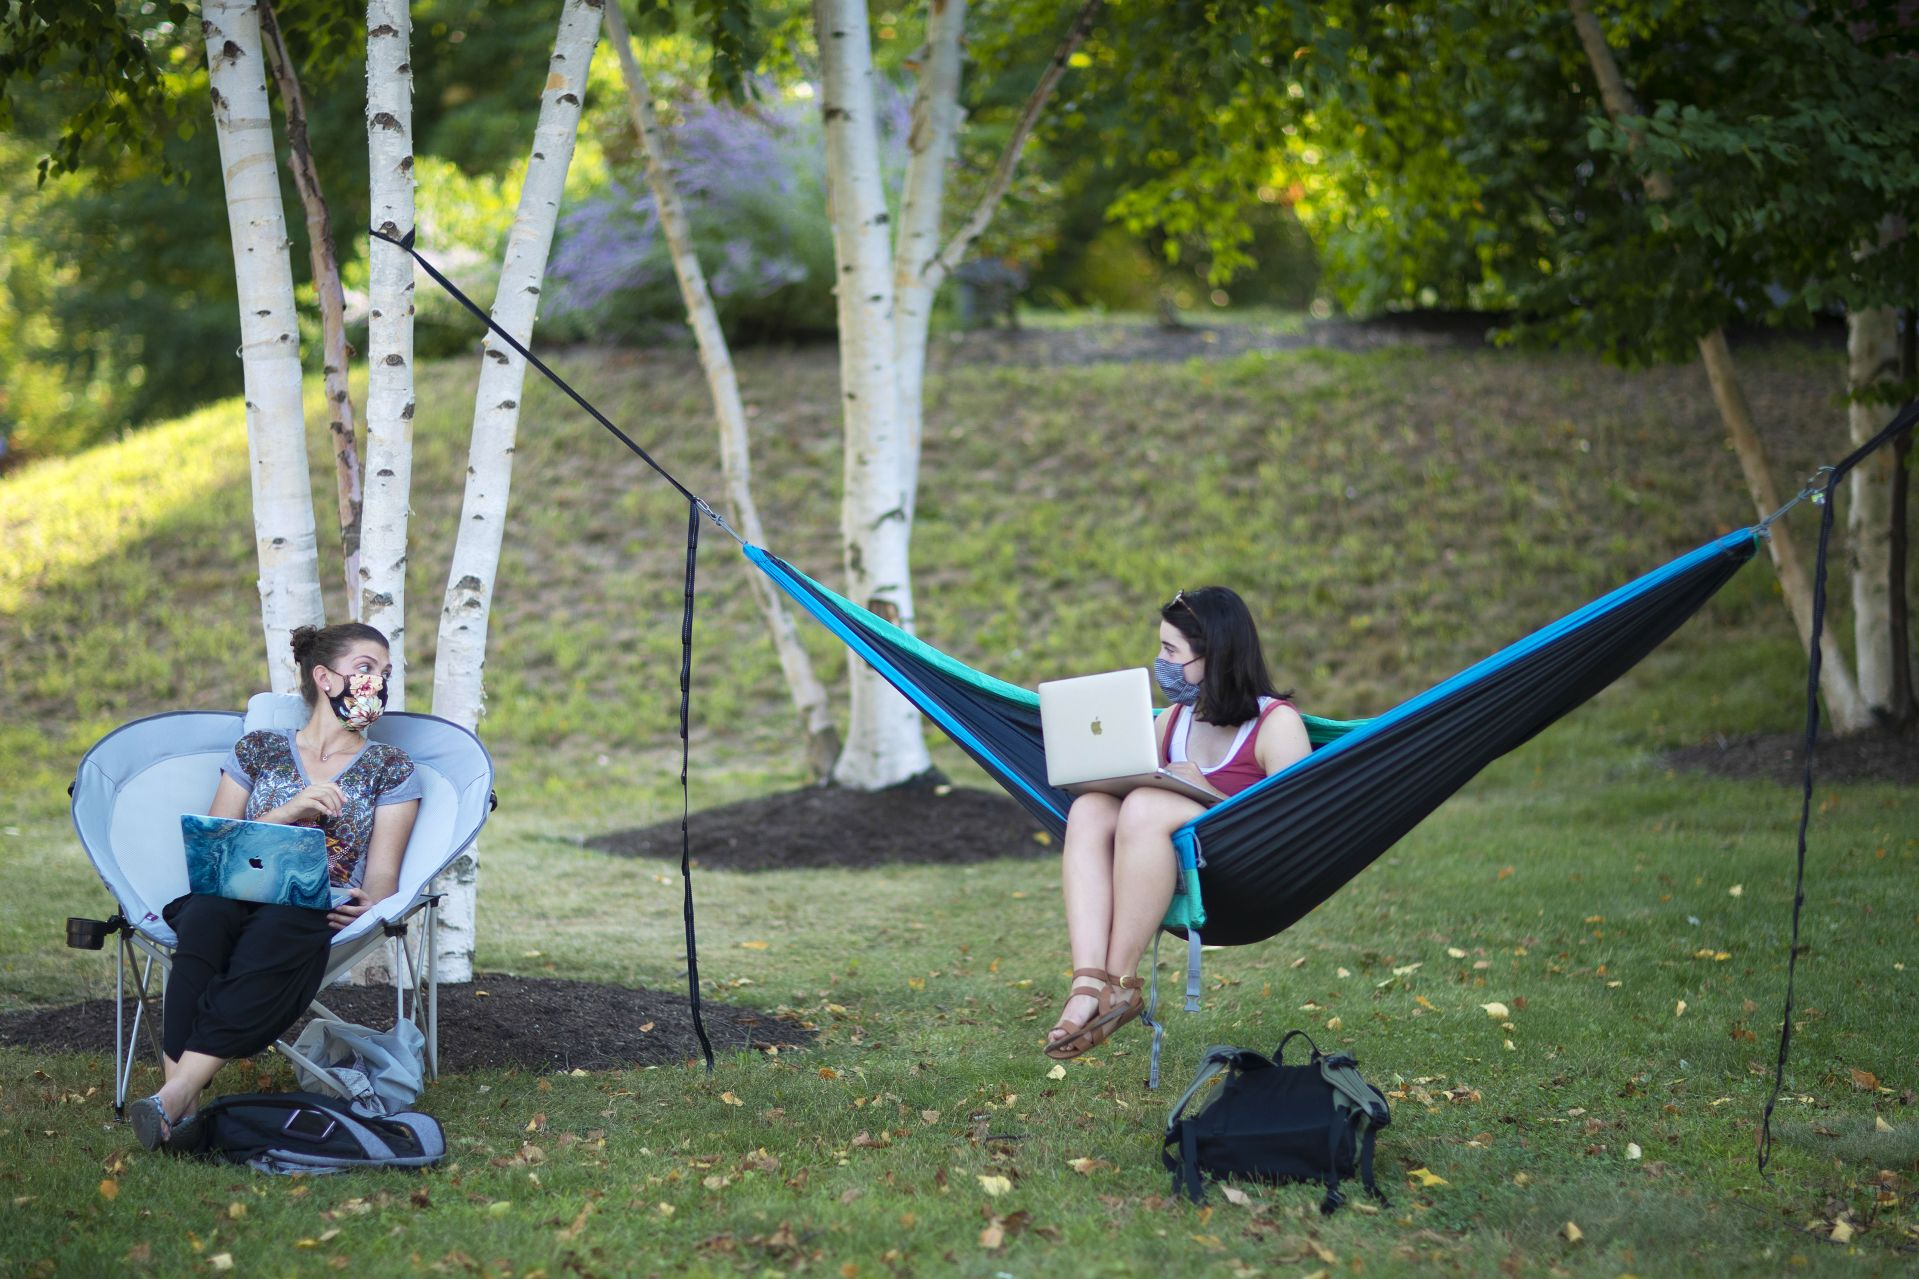 Campus scenes on Sept. 8, 2020.  From left, roomates Svea Althausen '24 of Reno, Nevada, and Katherine Buetens '24 of Orono, Maine, enjoy studying outside along Alumni Walk in front of Hathorn Hall.  Althausen likes the camp chair because she can pop it open across campus as she likes – and it's really comfy, she says. She finds it difficult to study in a hammock because the swaying interferes with her concentration. She was studying for INDS 295 - Afro-diasporic Activism   Buetens received the hammock as a high school graduation gift from her mother. FYS Vaccines taught by Bruno Salazar-Perea